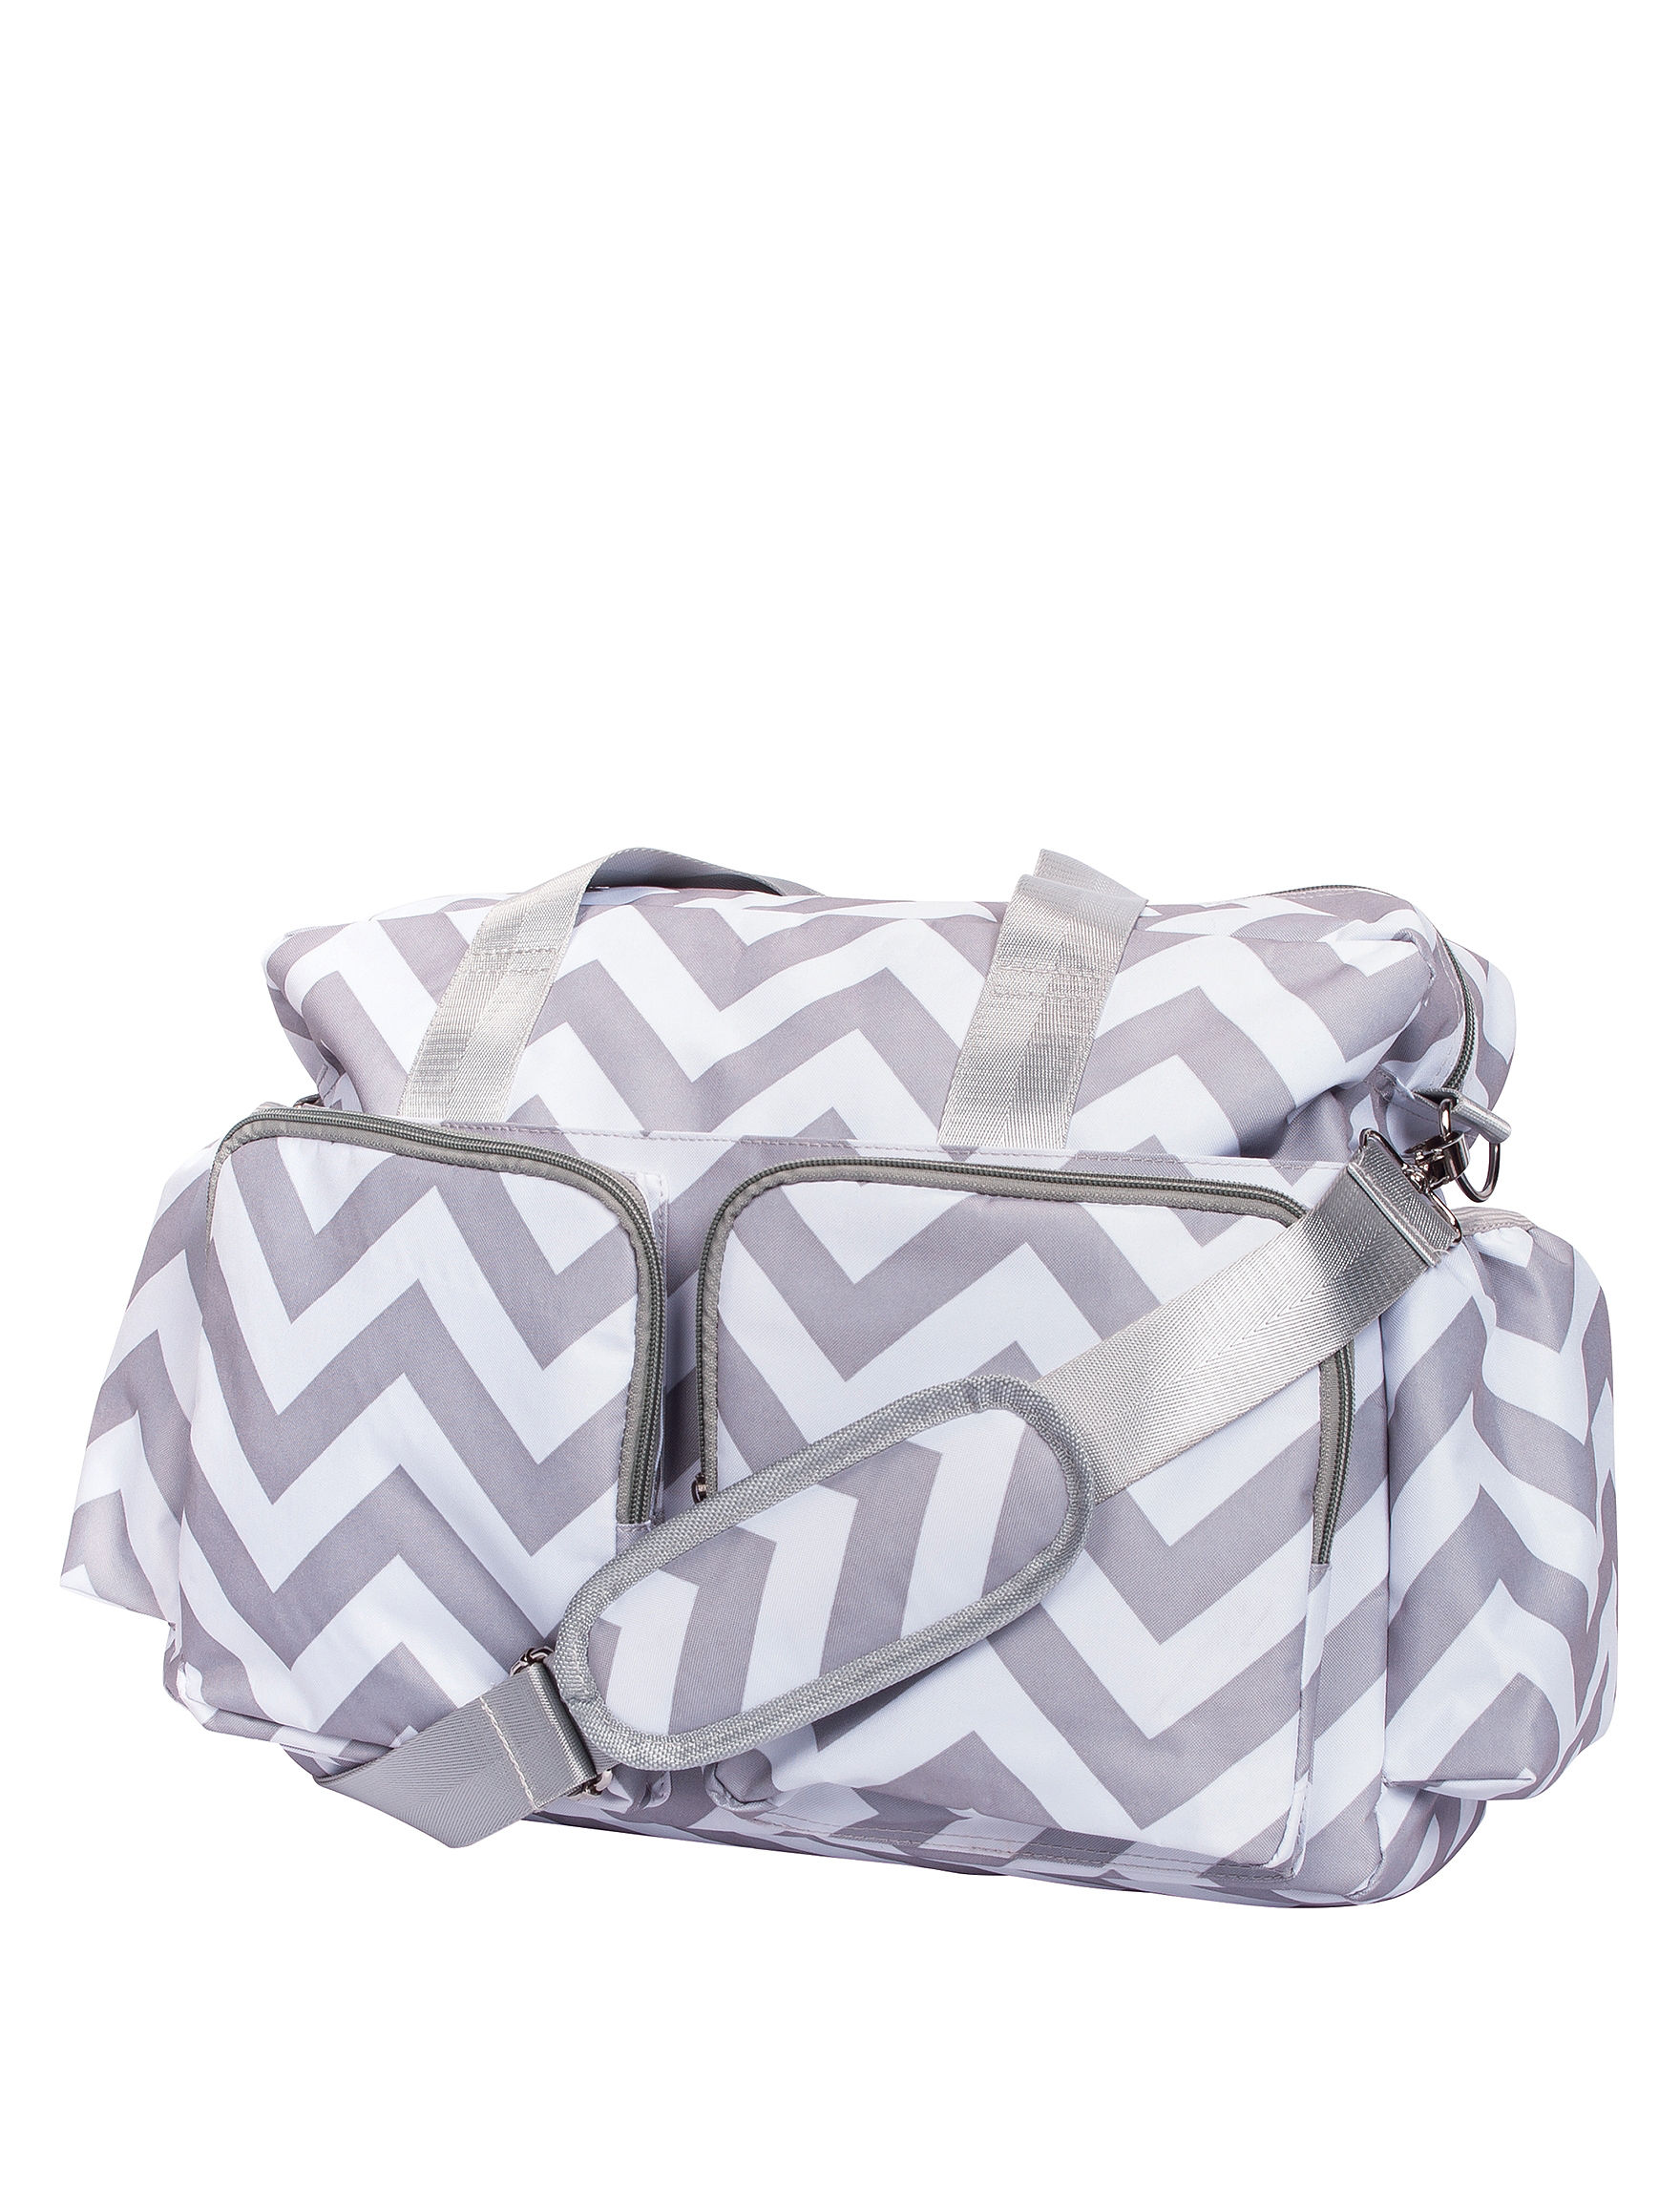 Trend Lab Grey / White Diaper Bags